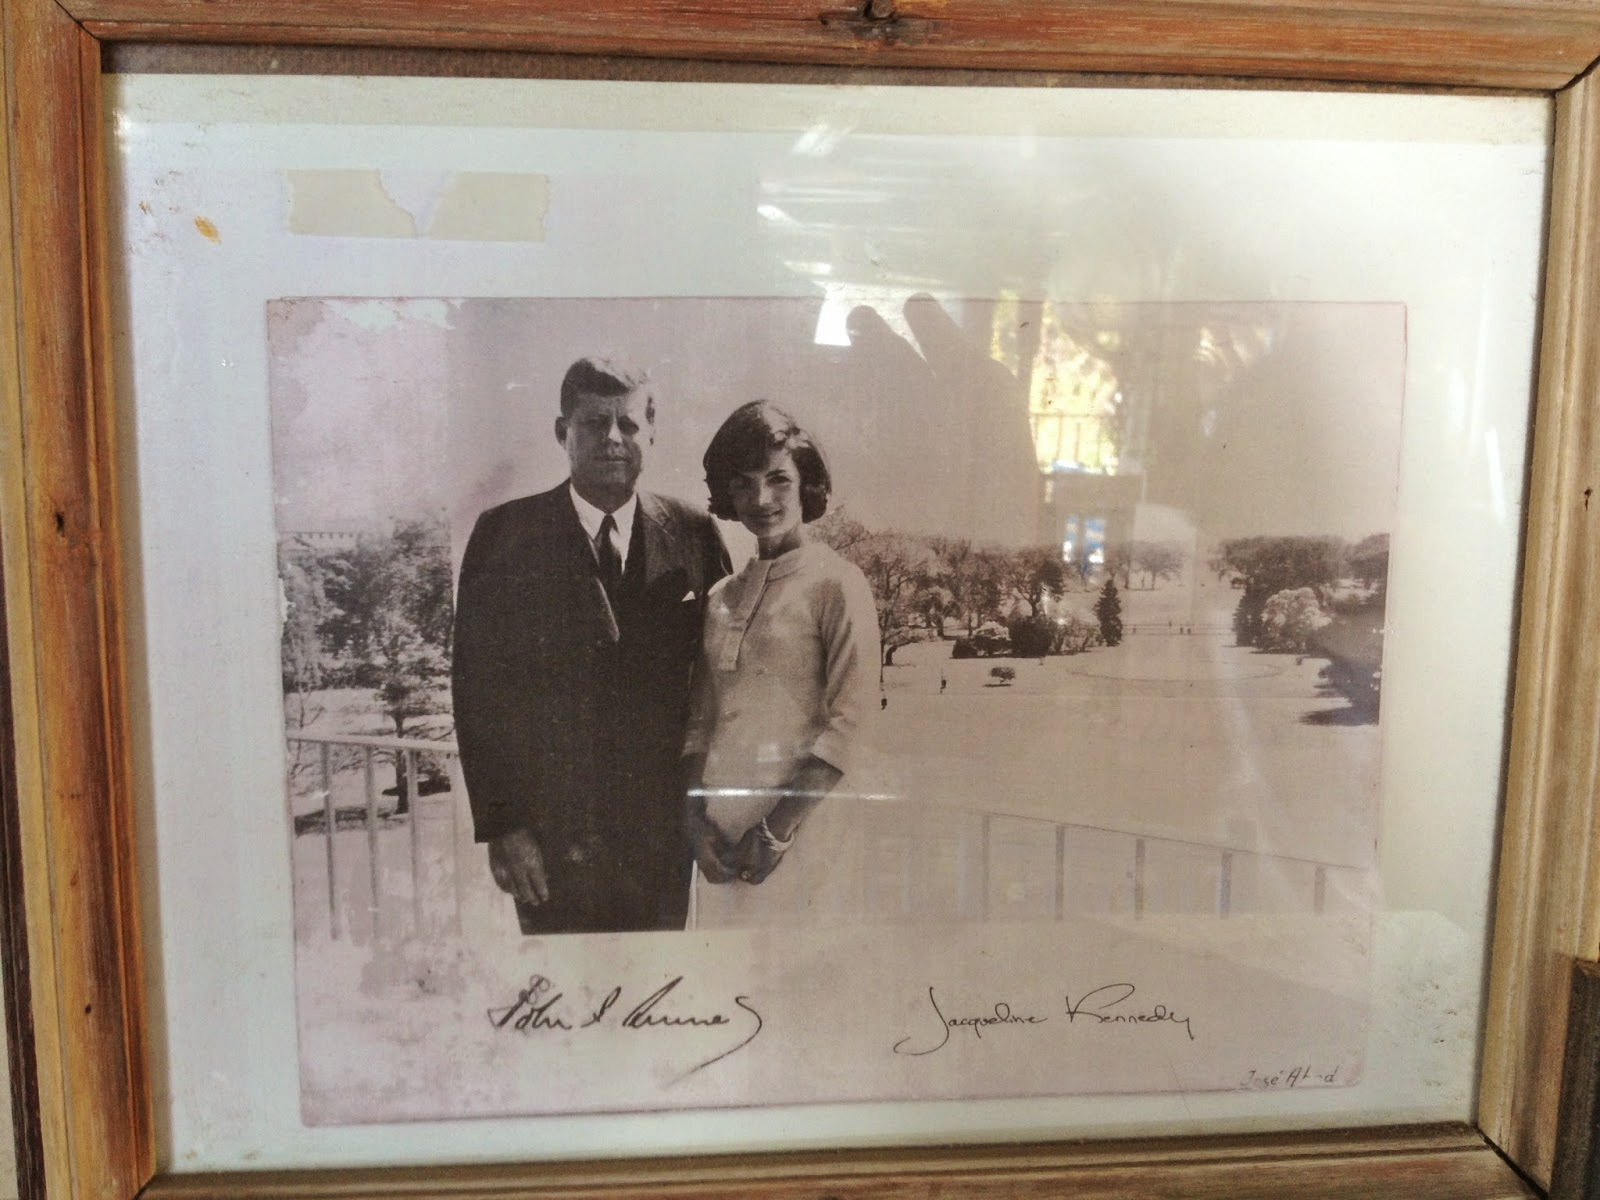 A picture of John F Kennedy and Jackie Kennedy in Pepe's Fishing Club in Byblos.